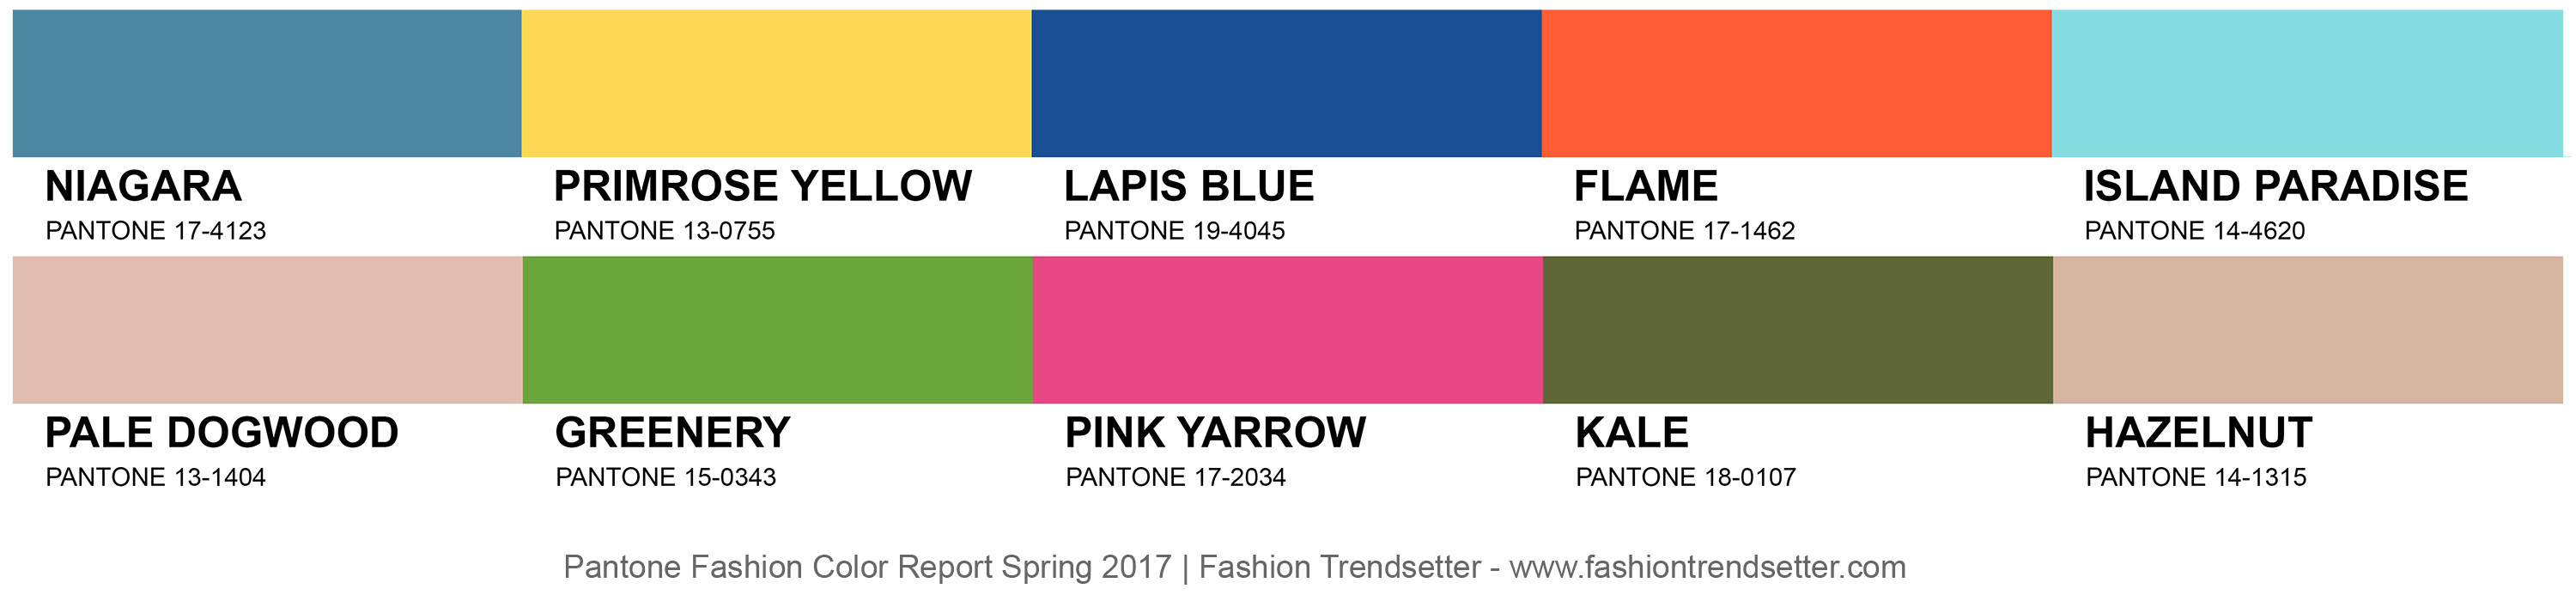 autumnwinter 2017 2018 trend forecasting is a trend color guide that